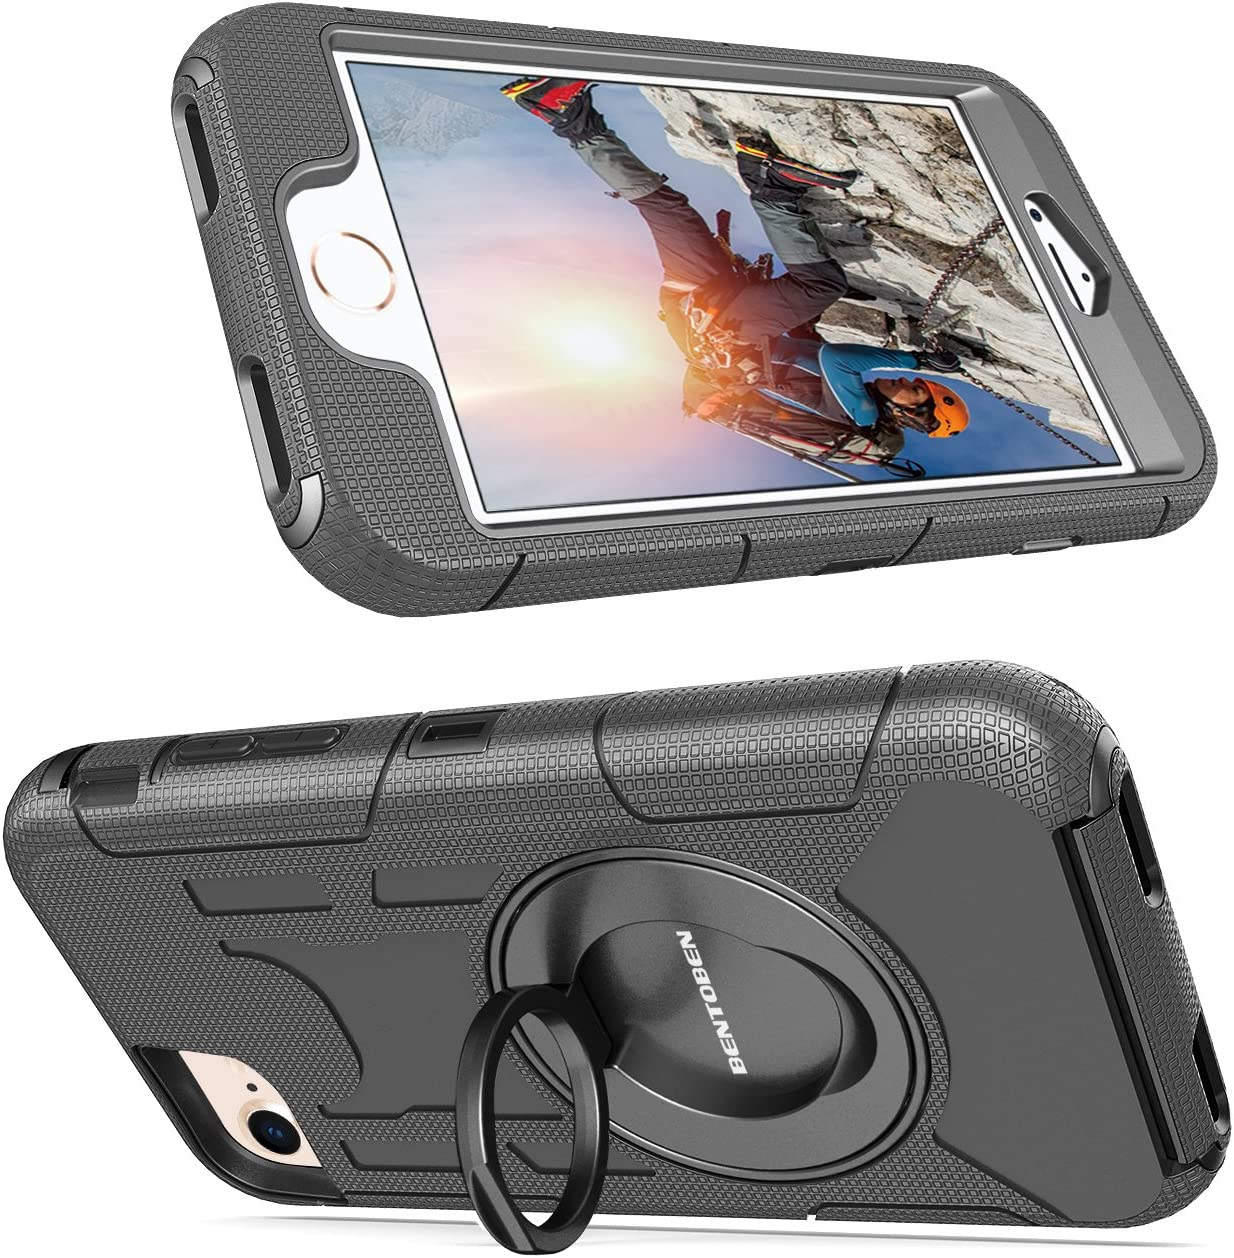 BENTOBEN iPhone 8 Case,iPhone 7 Case Heavy Duty Full Body Rugged Rotating Kickstand Swivel Ring Belt Clip Holster Hybrid 4 Layer Hard PC Soft Silicone Shockproof Protective Case for iPhone 8//7,Black